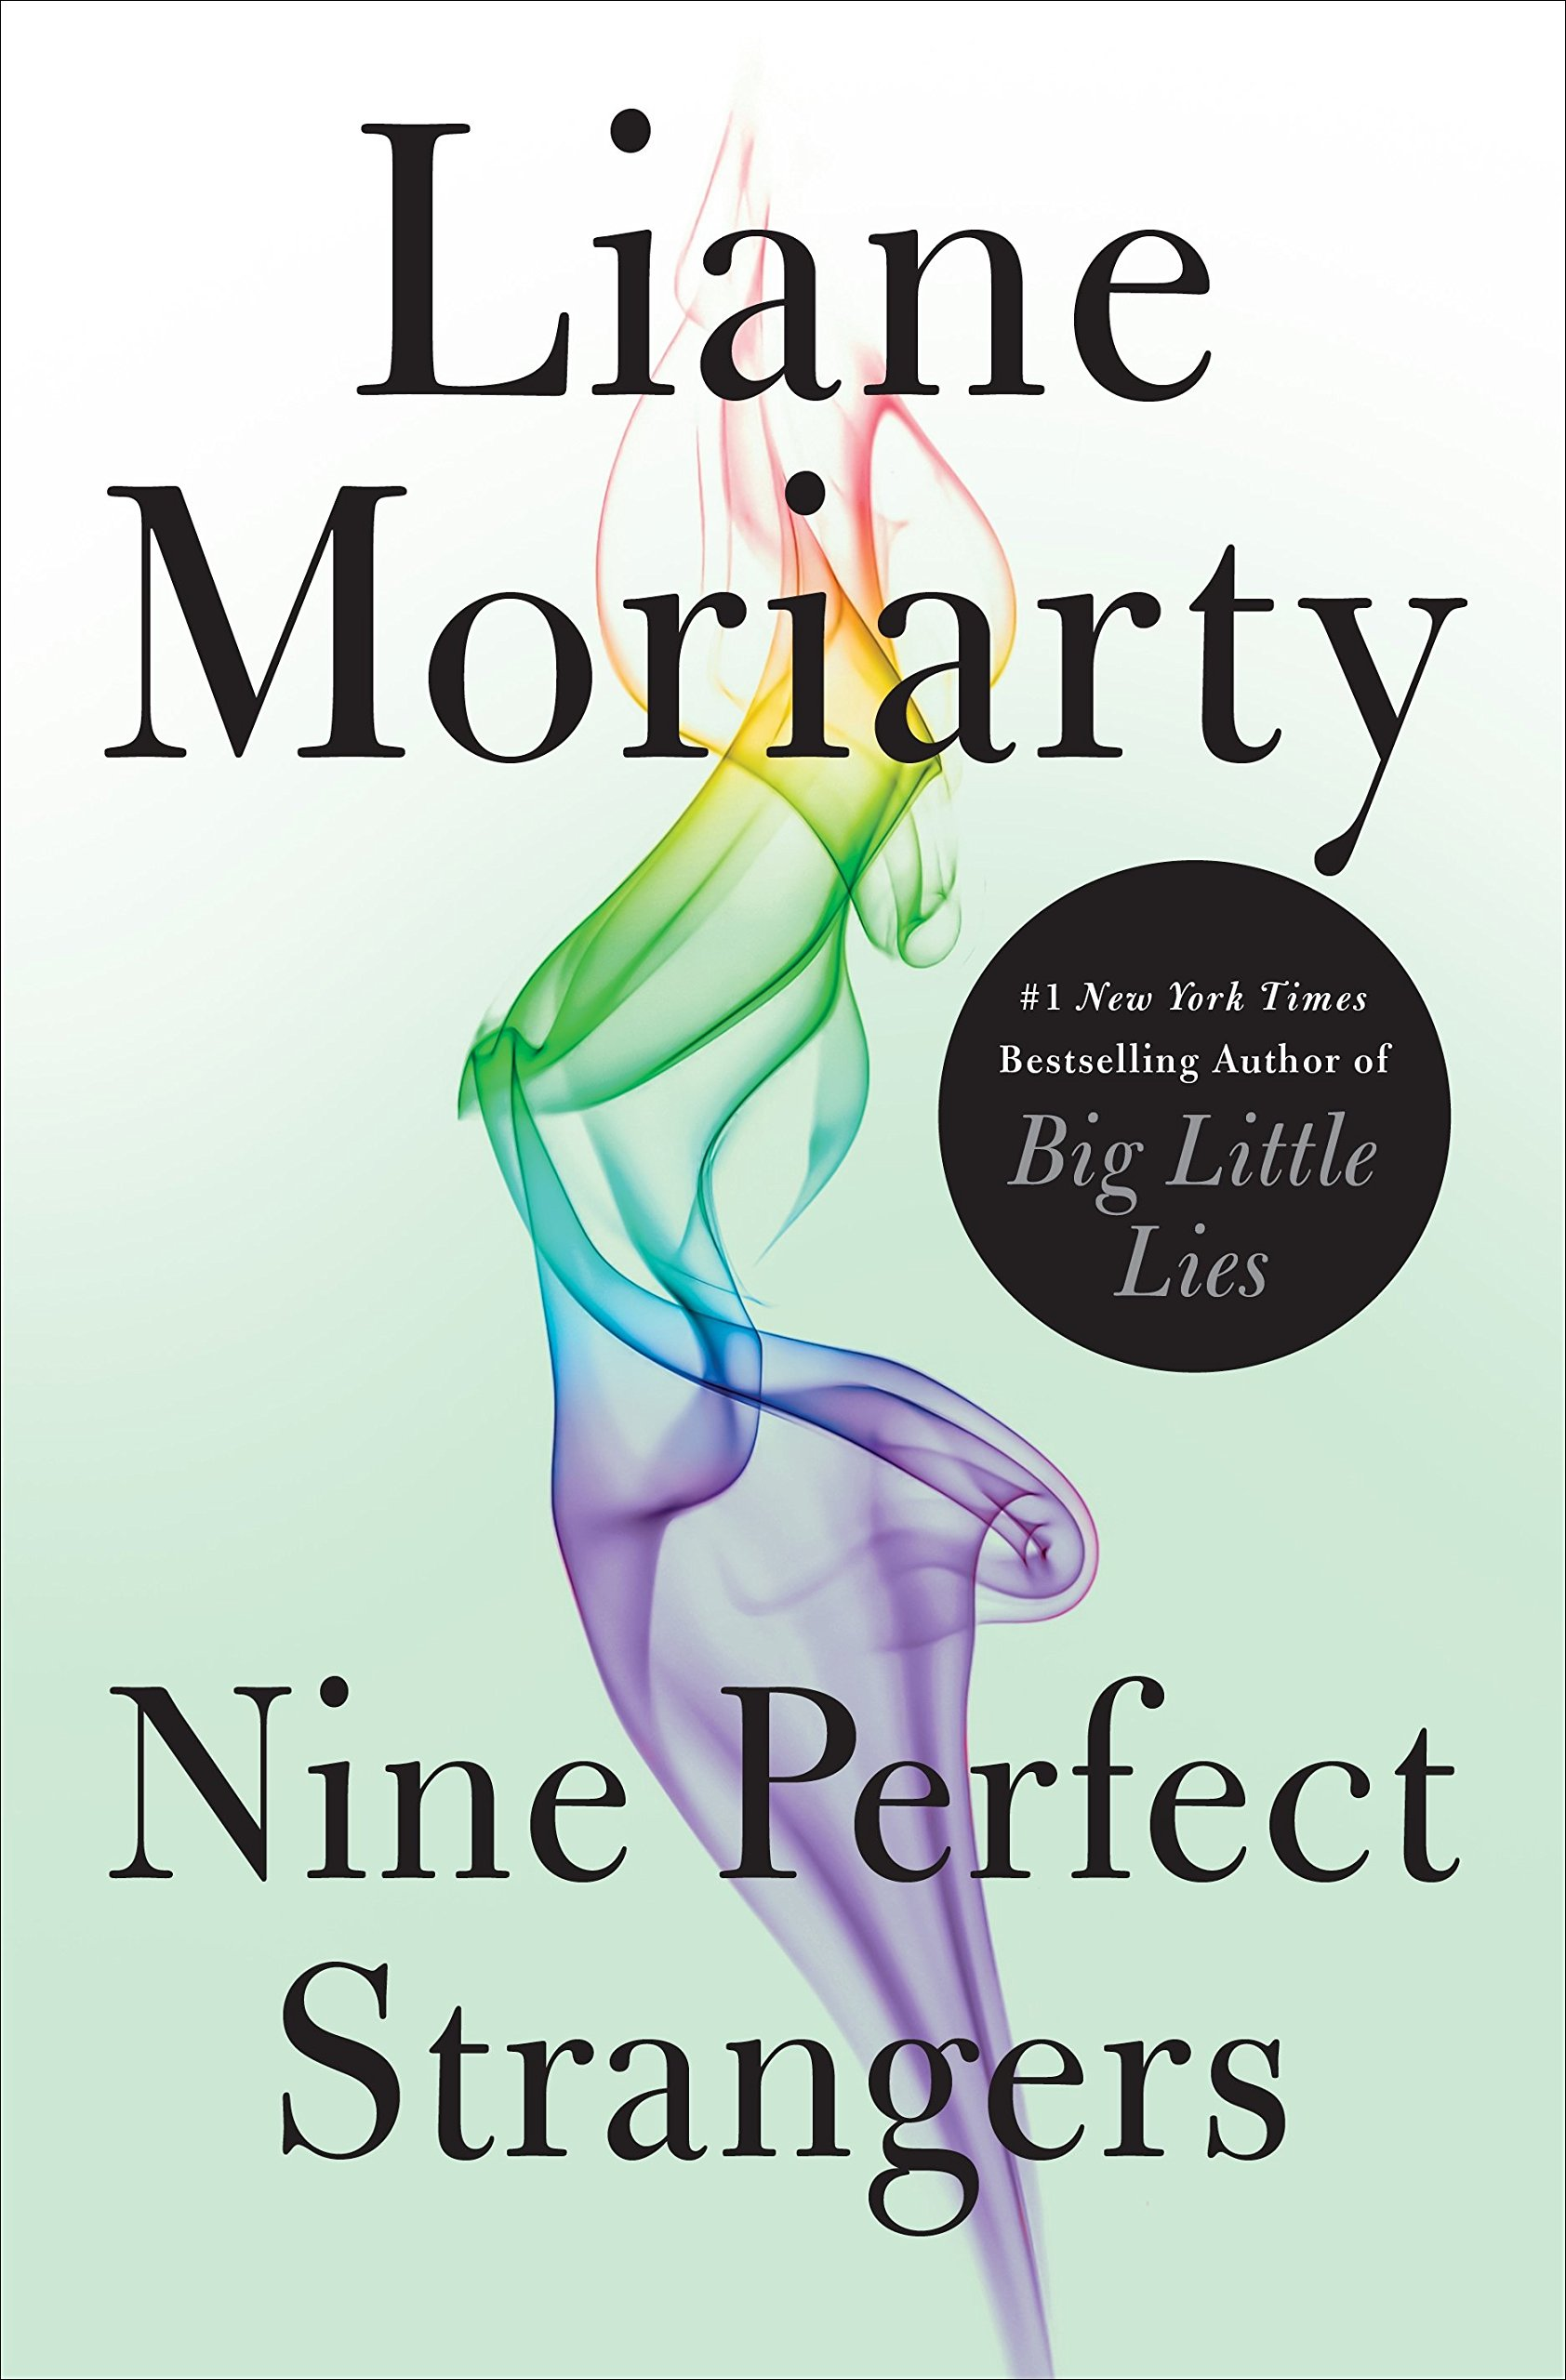 Nine Perfect Strangers but Liane Moriarty